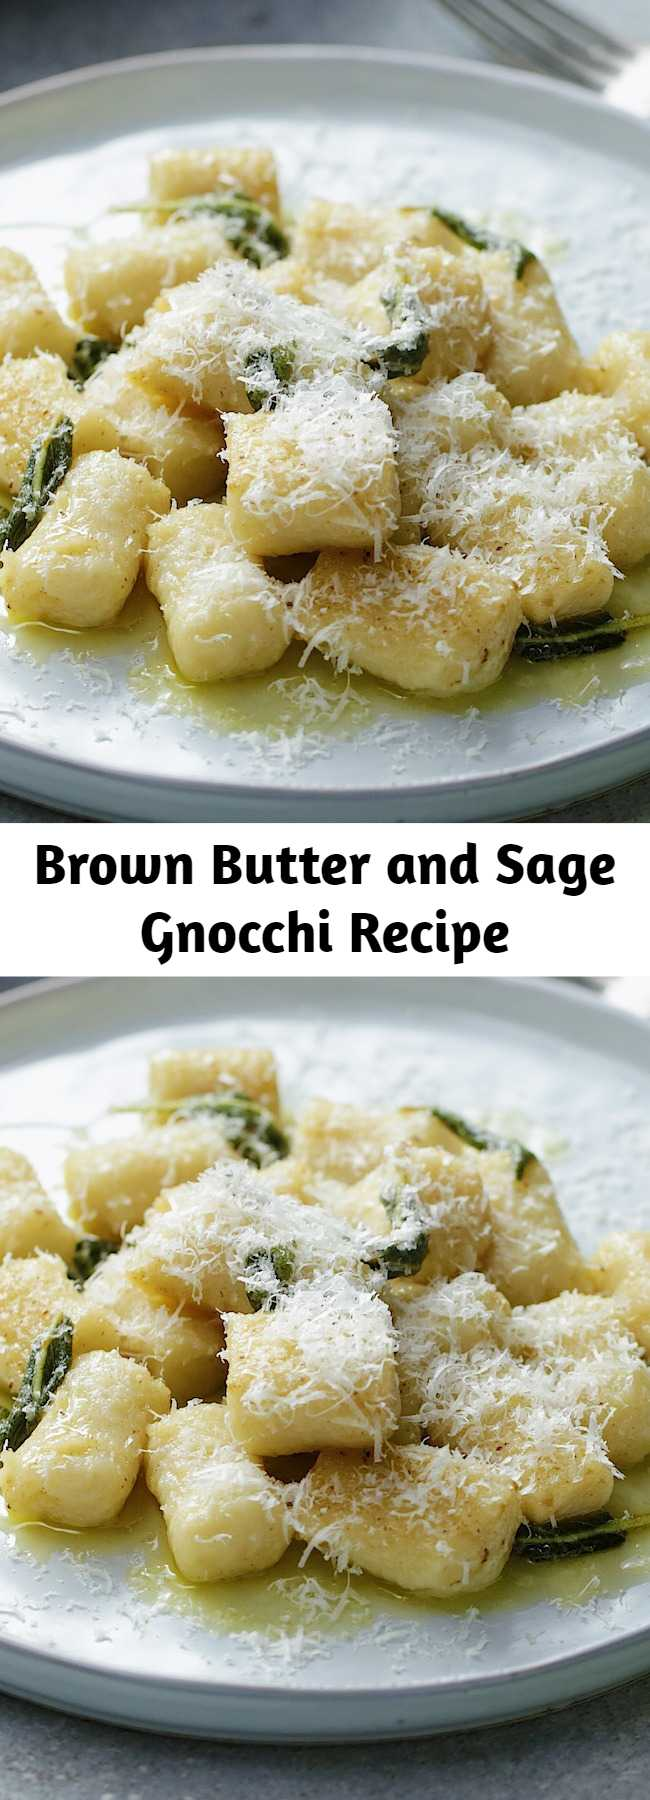 Brown Butter and Sage Gnocchi Recipe - Delicious homemade gnocchi with a simple brown butter and sage sauce. An easy twist on your classic Italian gnocchi.